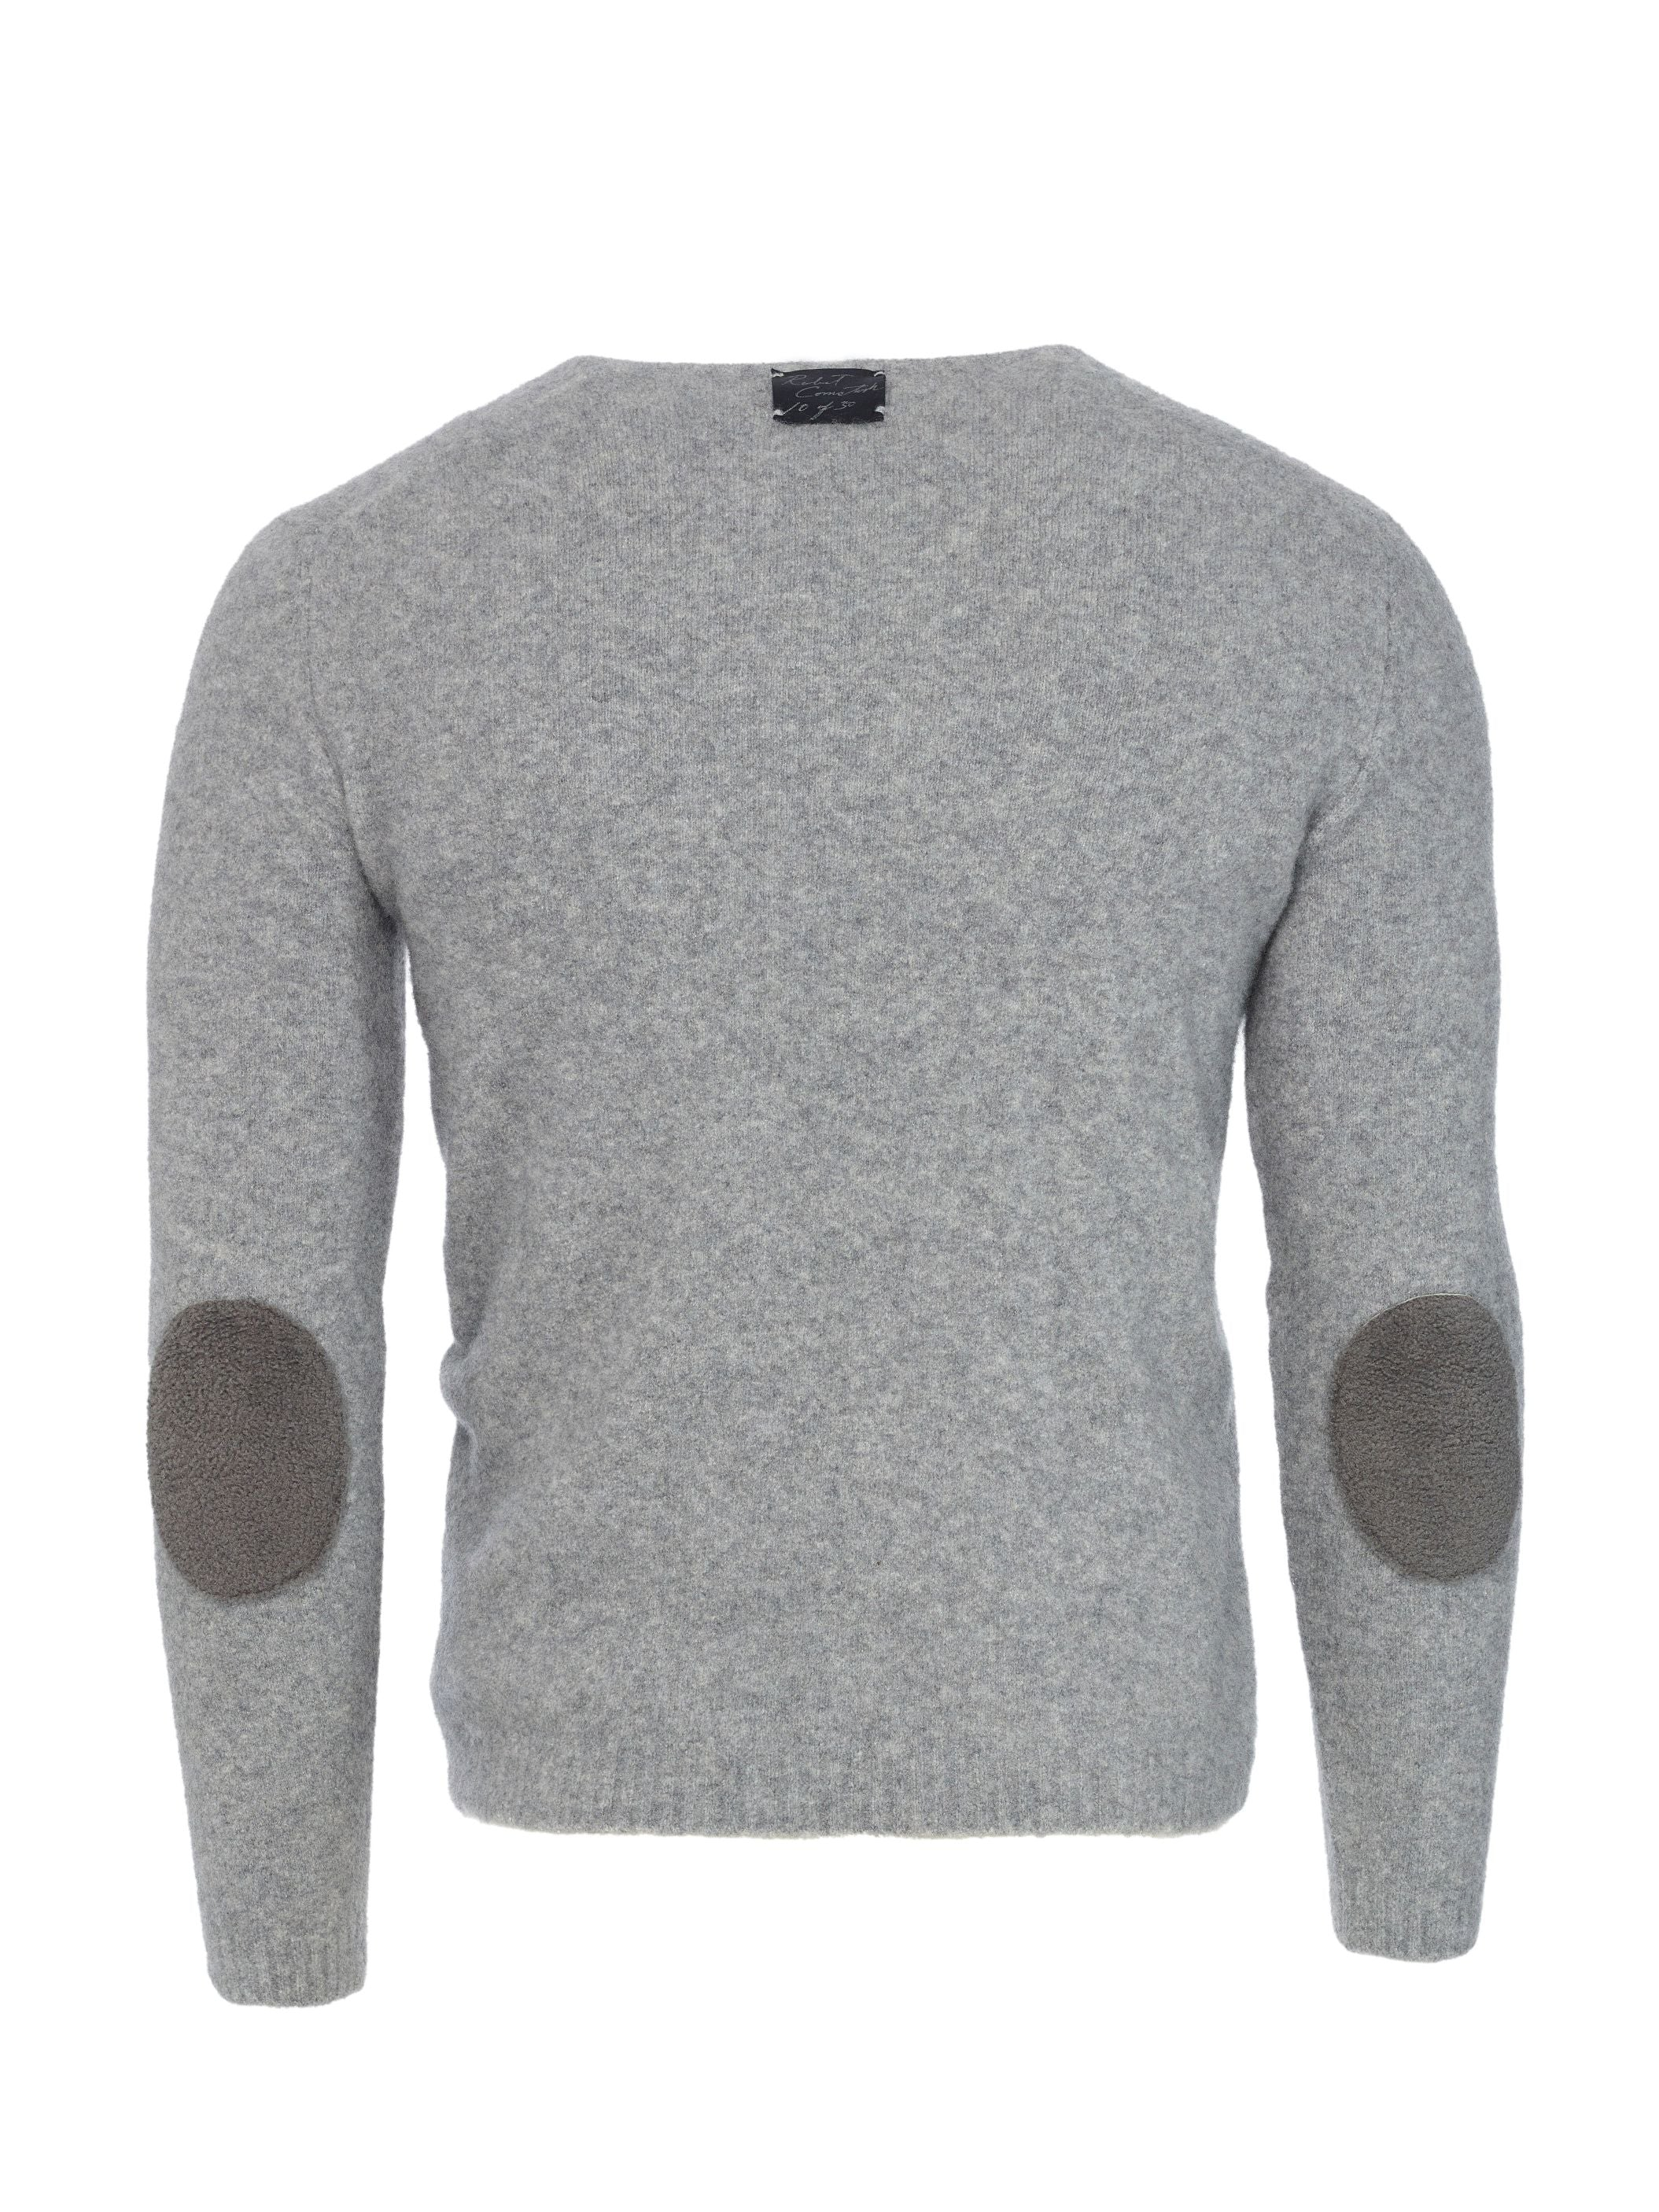 Cashmere fleece is accented by Baby Astrakhan lamb elbow patches